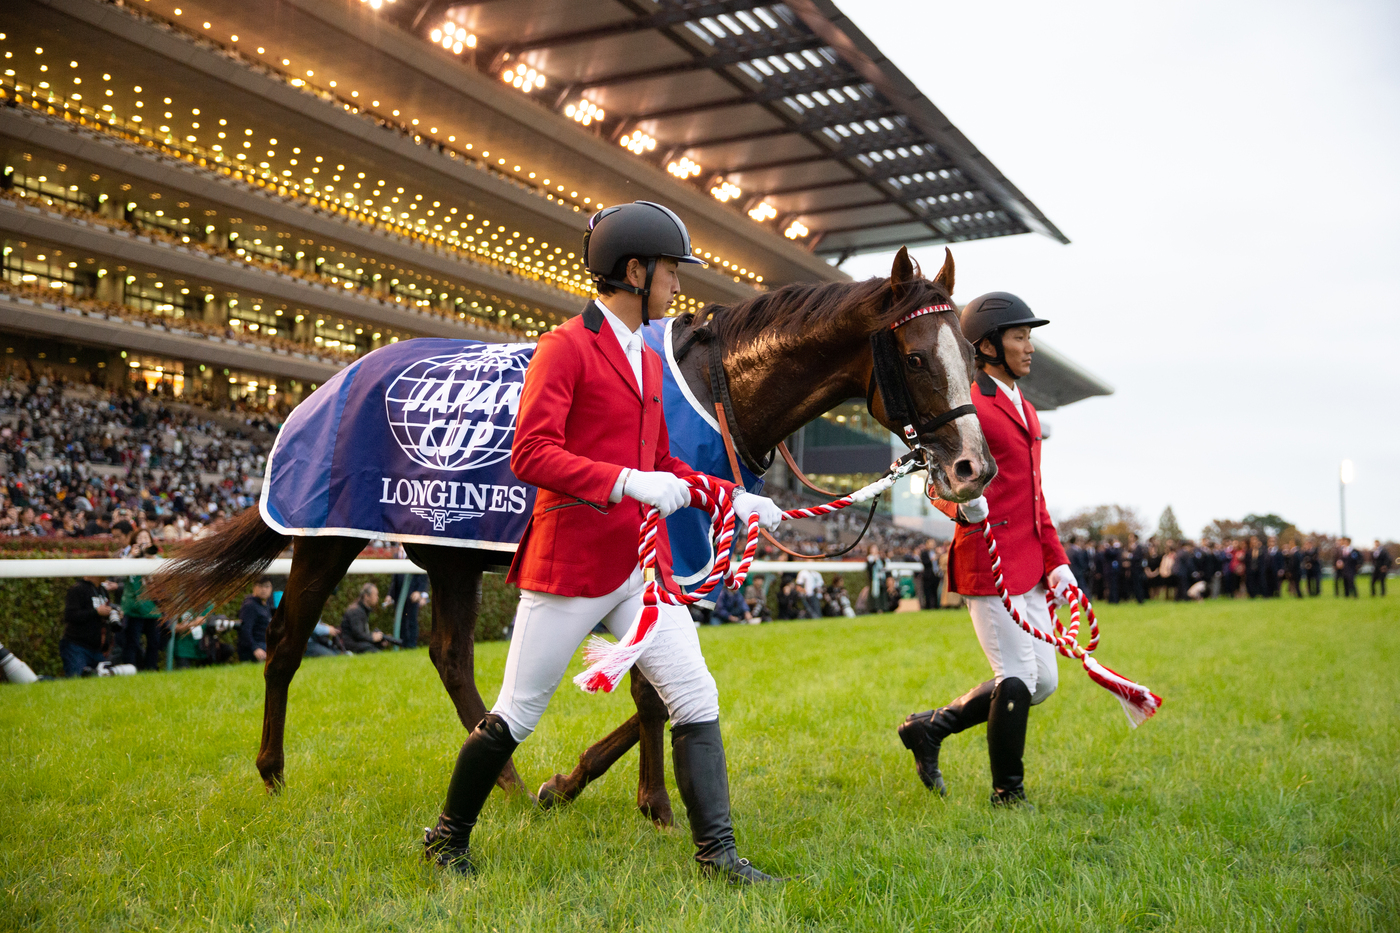 Longines Flat Racing Event: Suave Richard galloped to victory in the 2019 edition of the Japan Cup in association with Longines 5